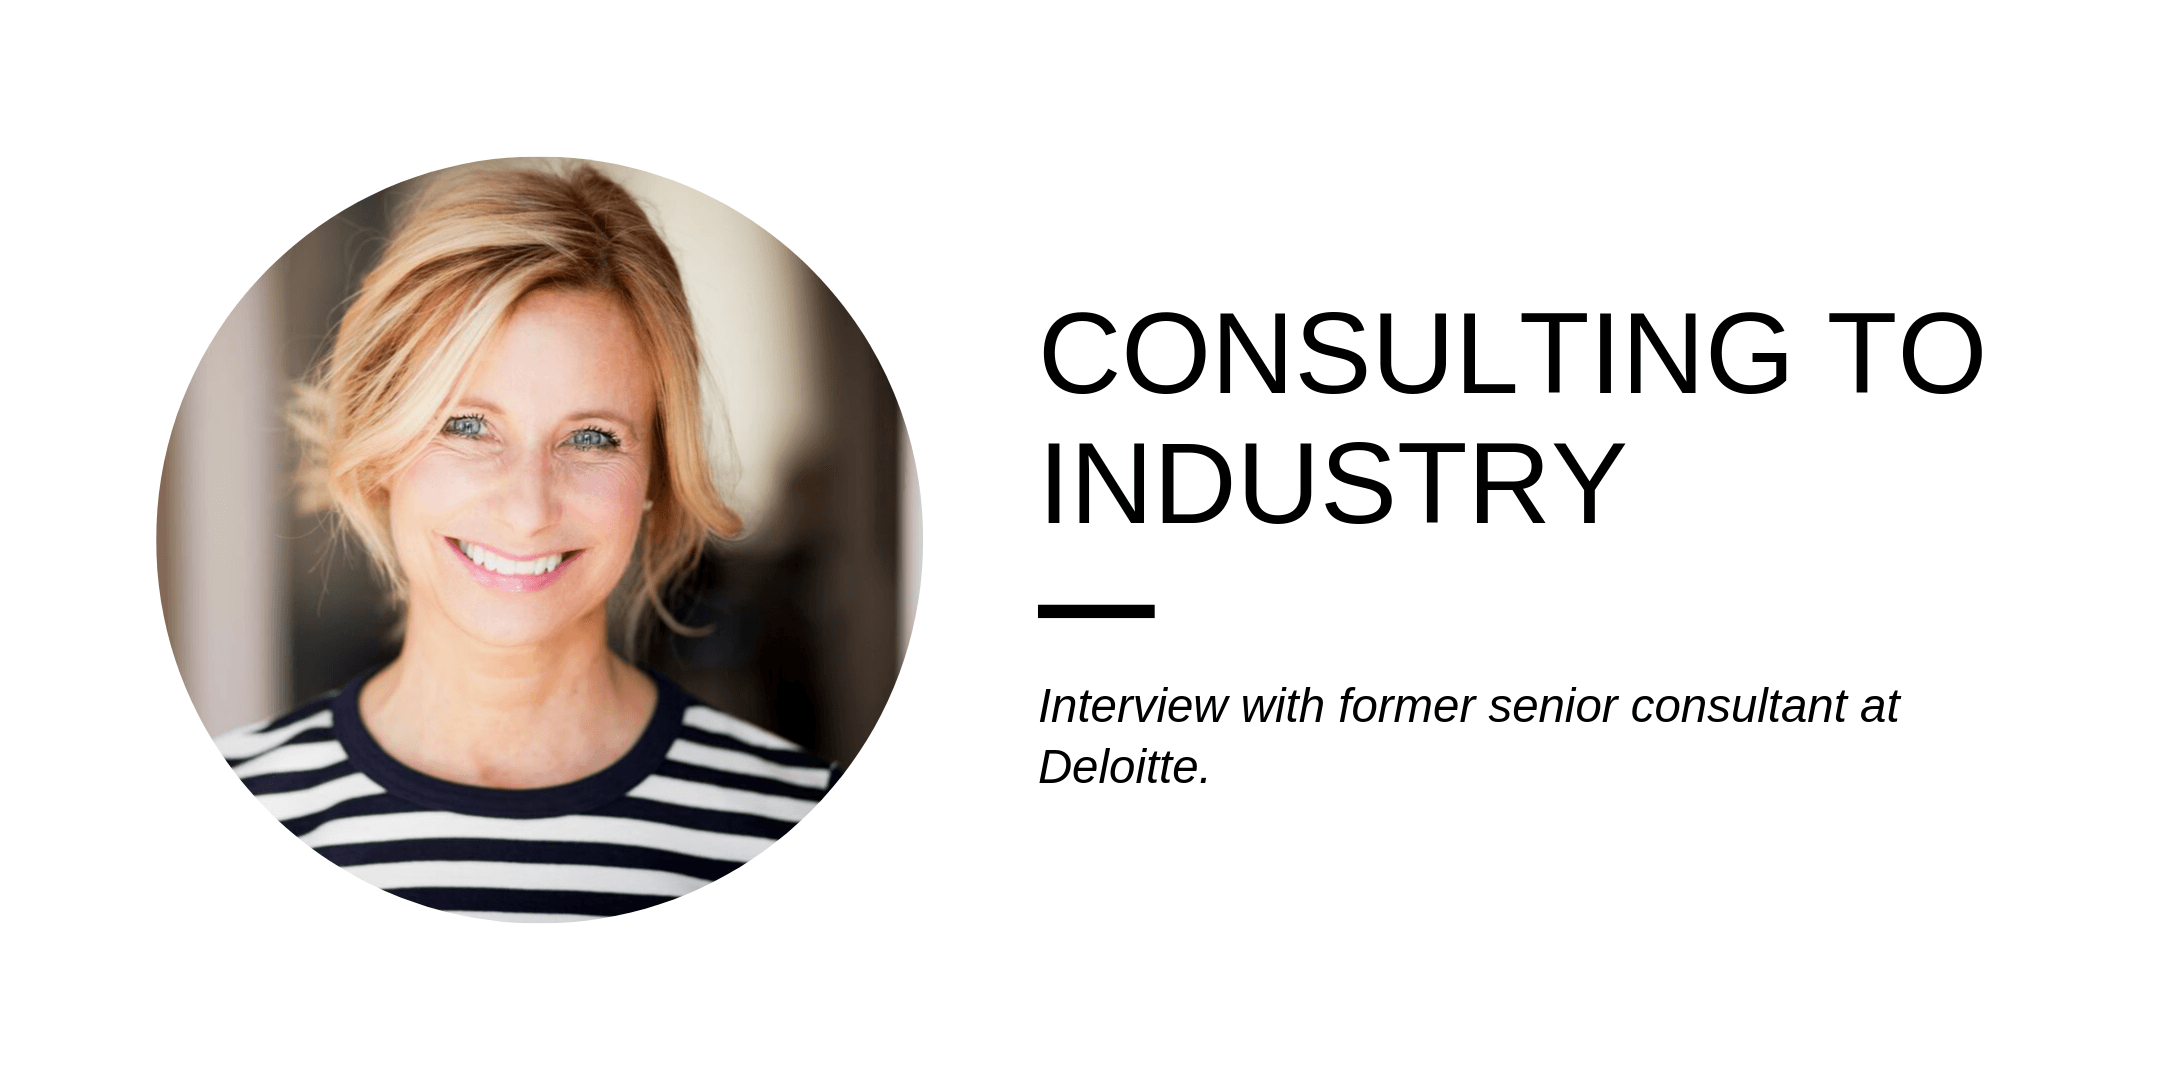 From consulting to industry – Candidate interview (Former senior consultant at Deloitte)